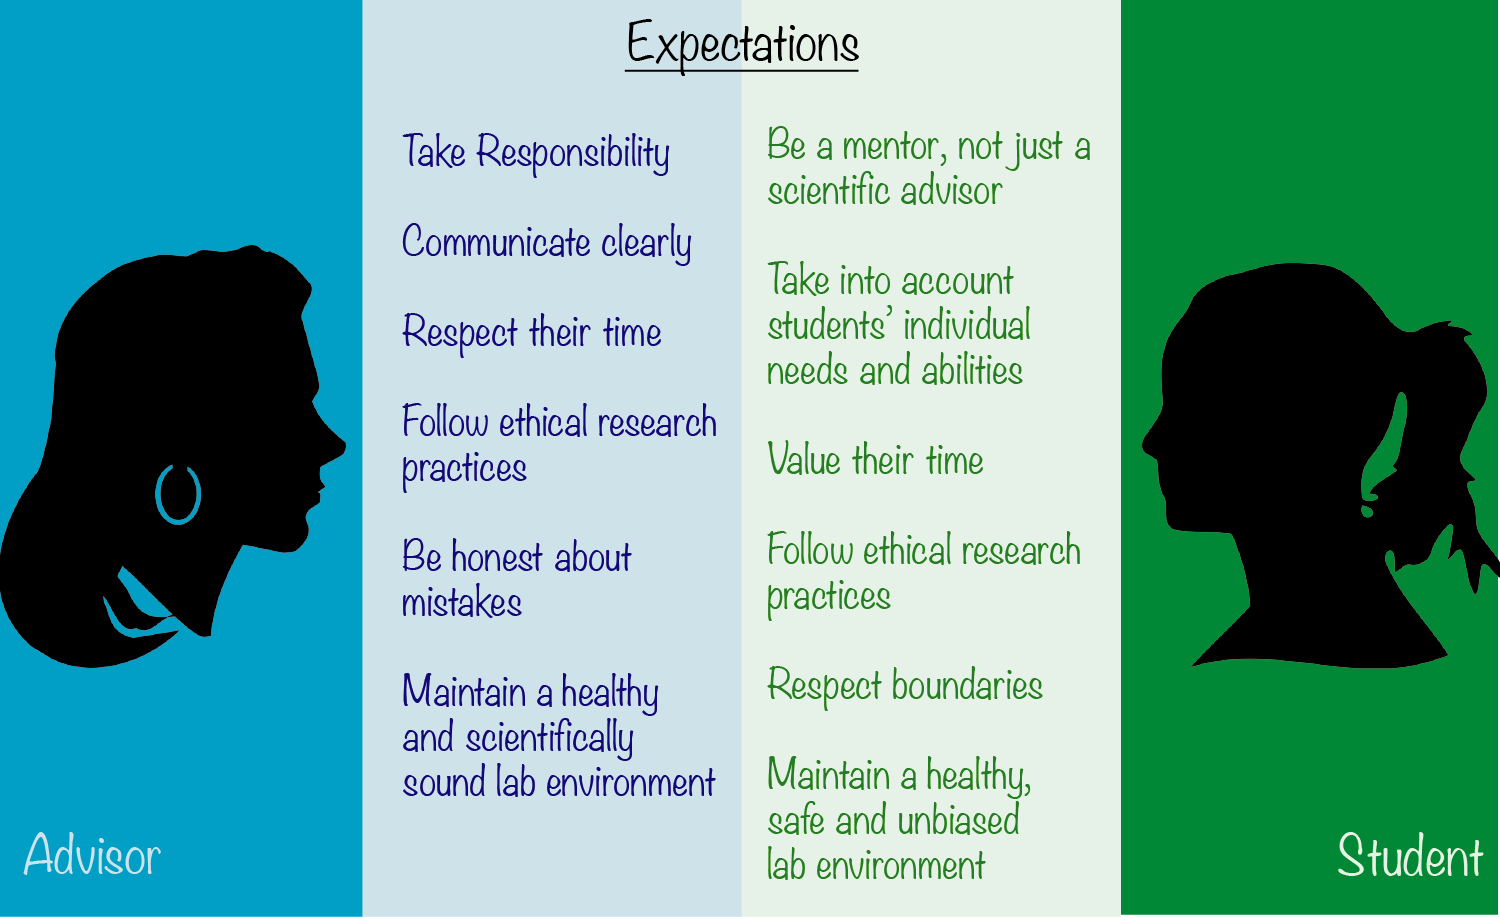 What do students and advisors expect from each other?